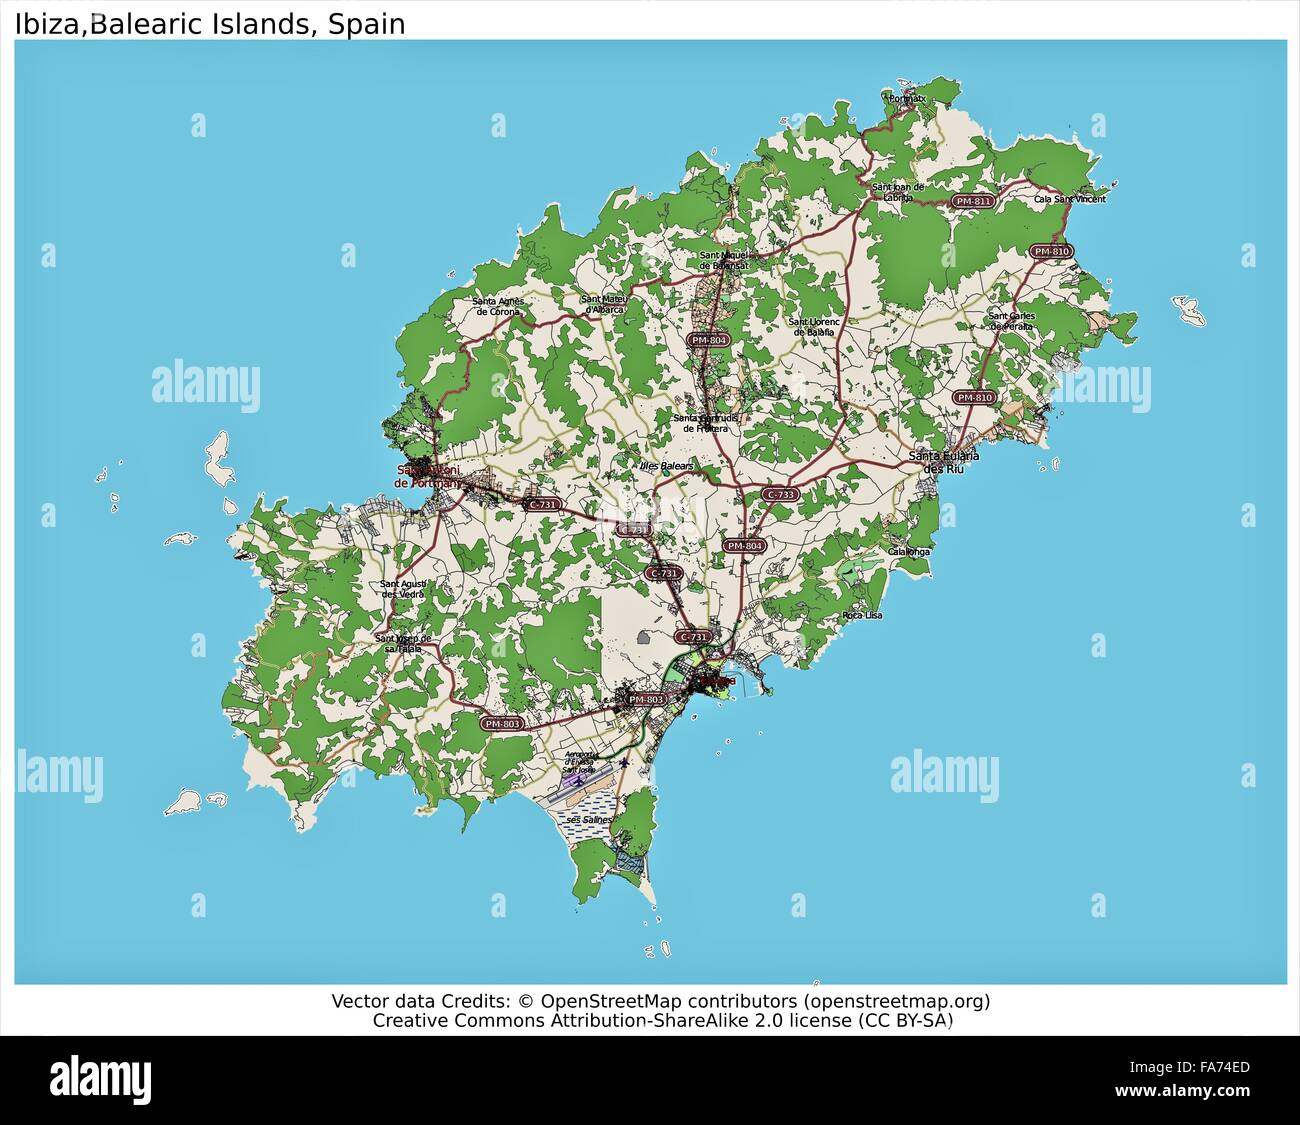 Ibiza Balearic Spain location map Stock Photo 92355605 Alamy